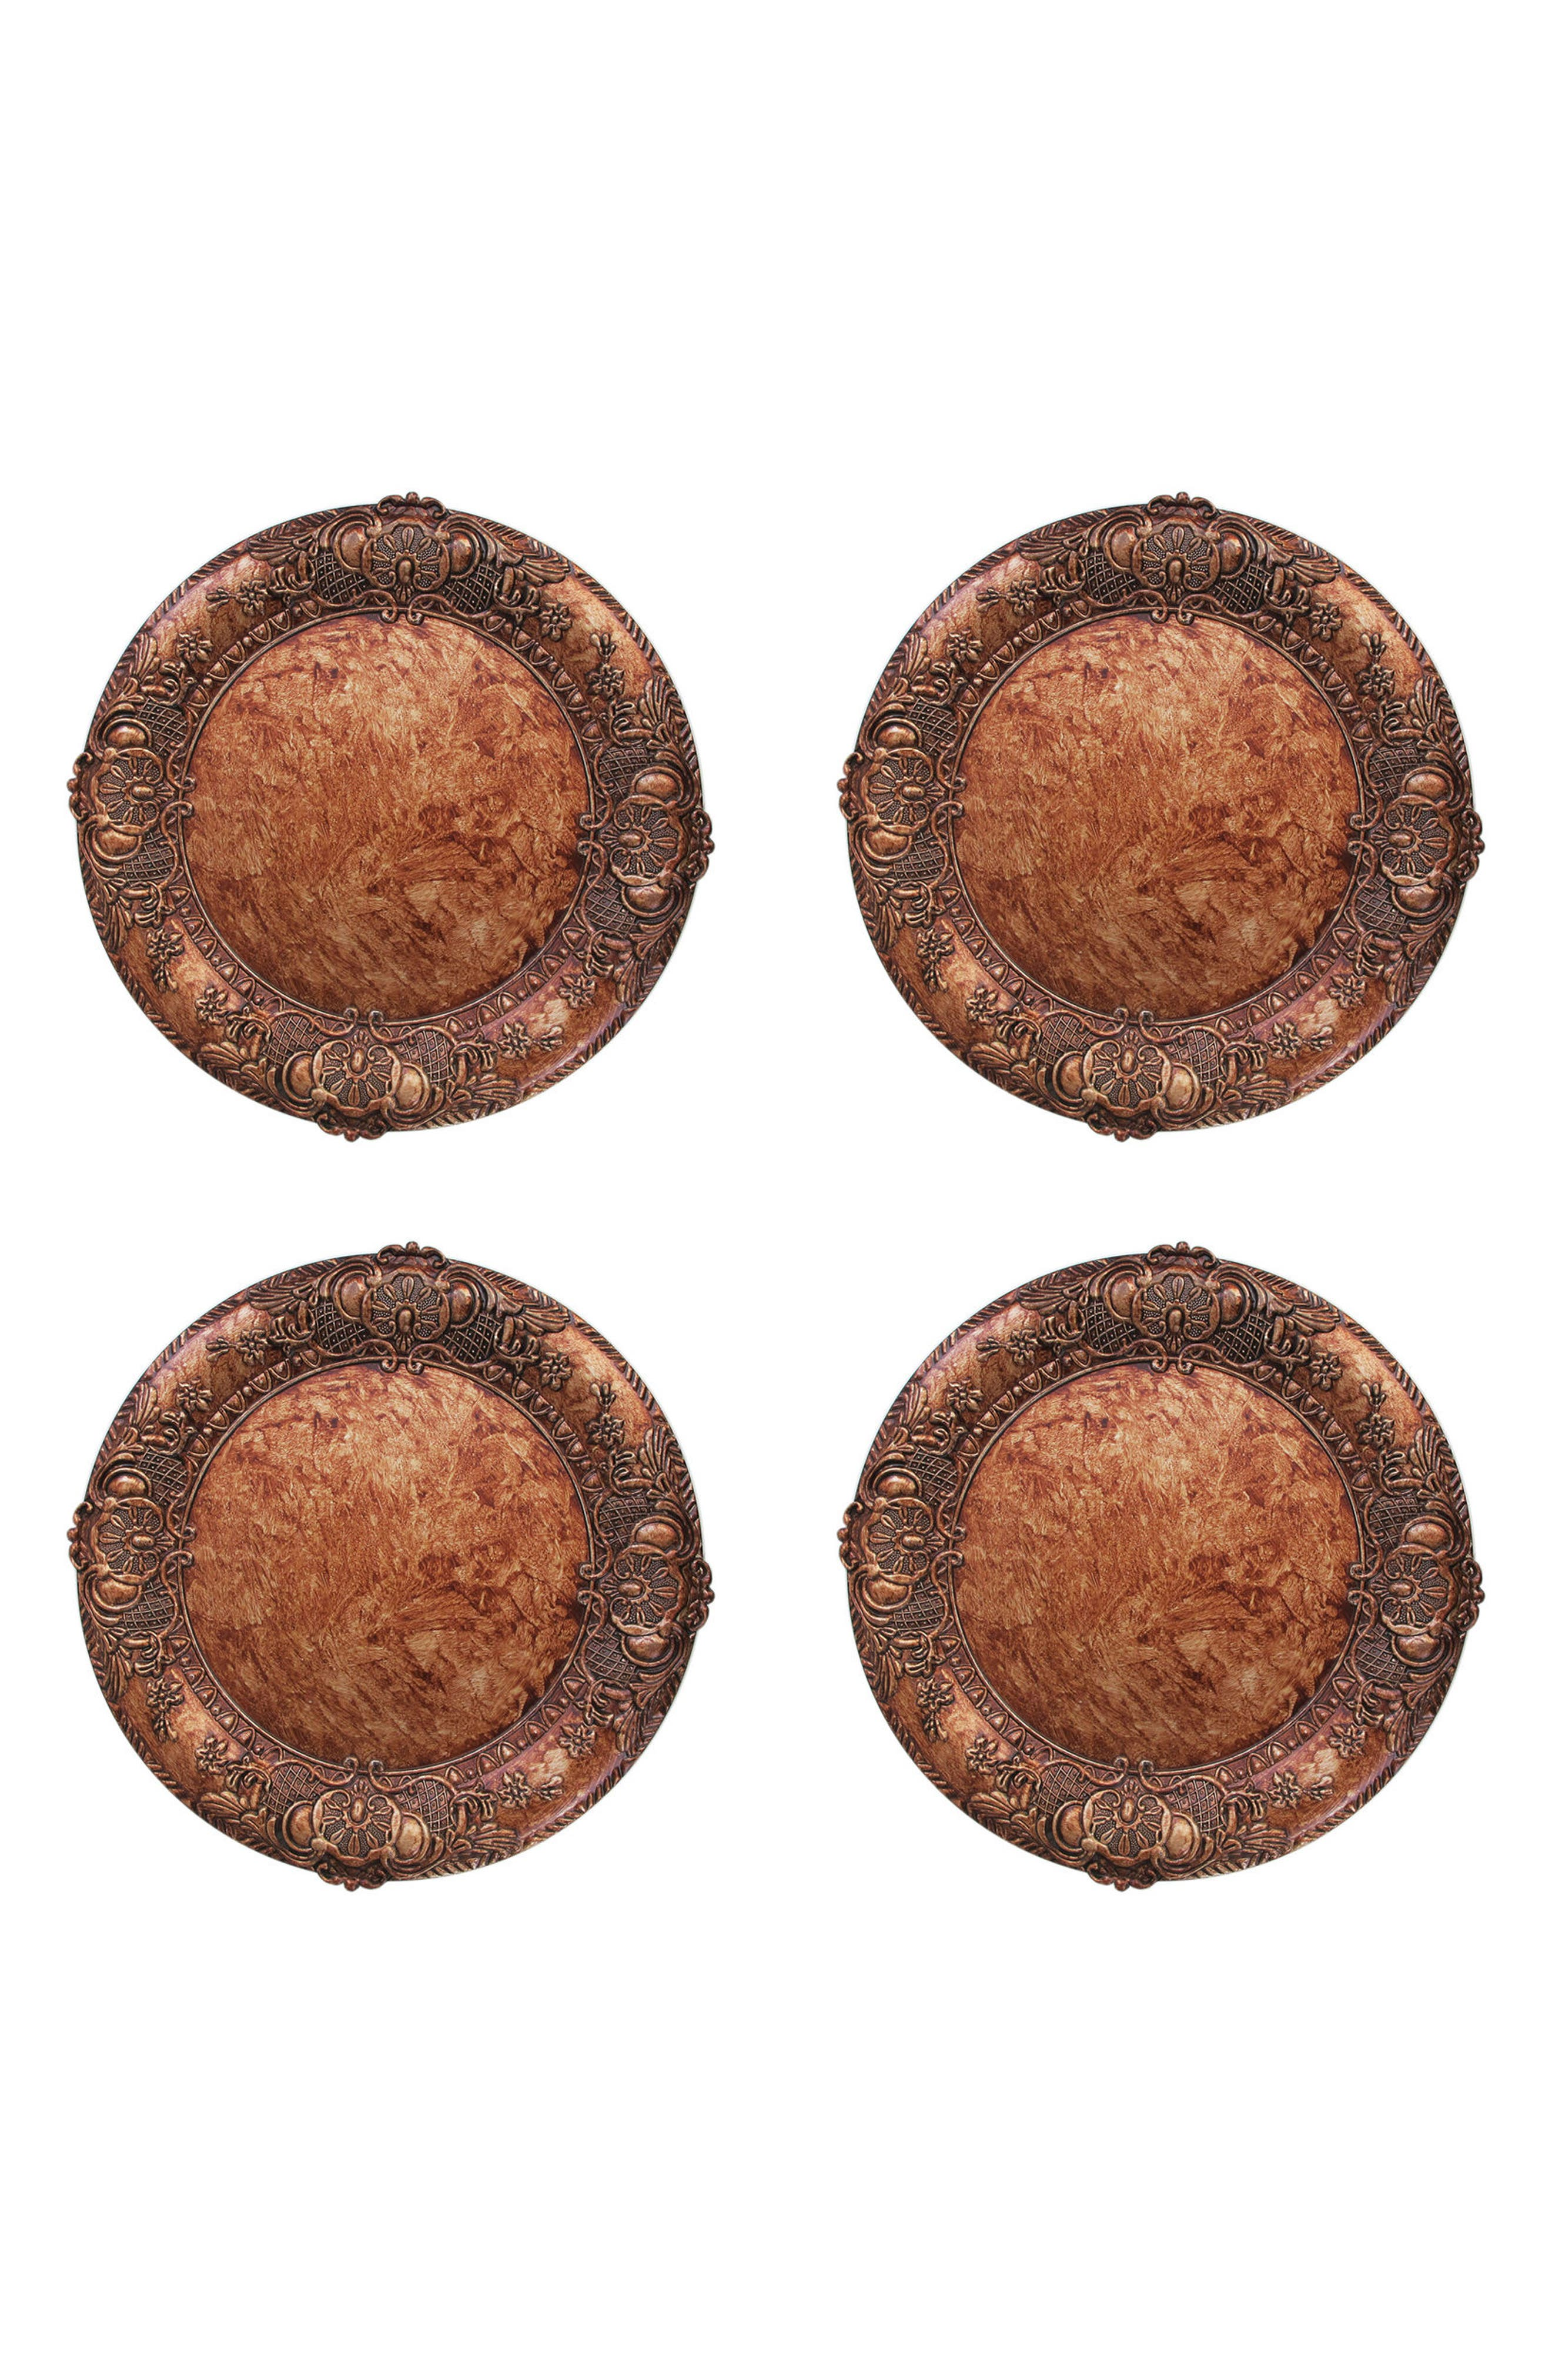 Main Image - American Atelier Set of 4 Embossed Charger Plates